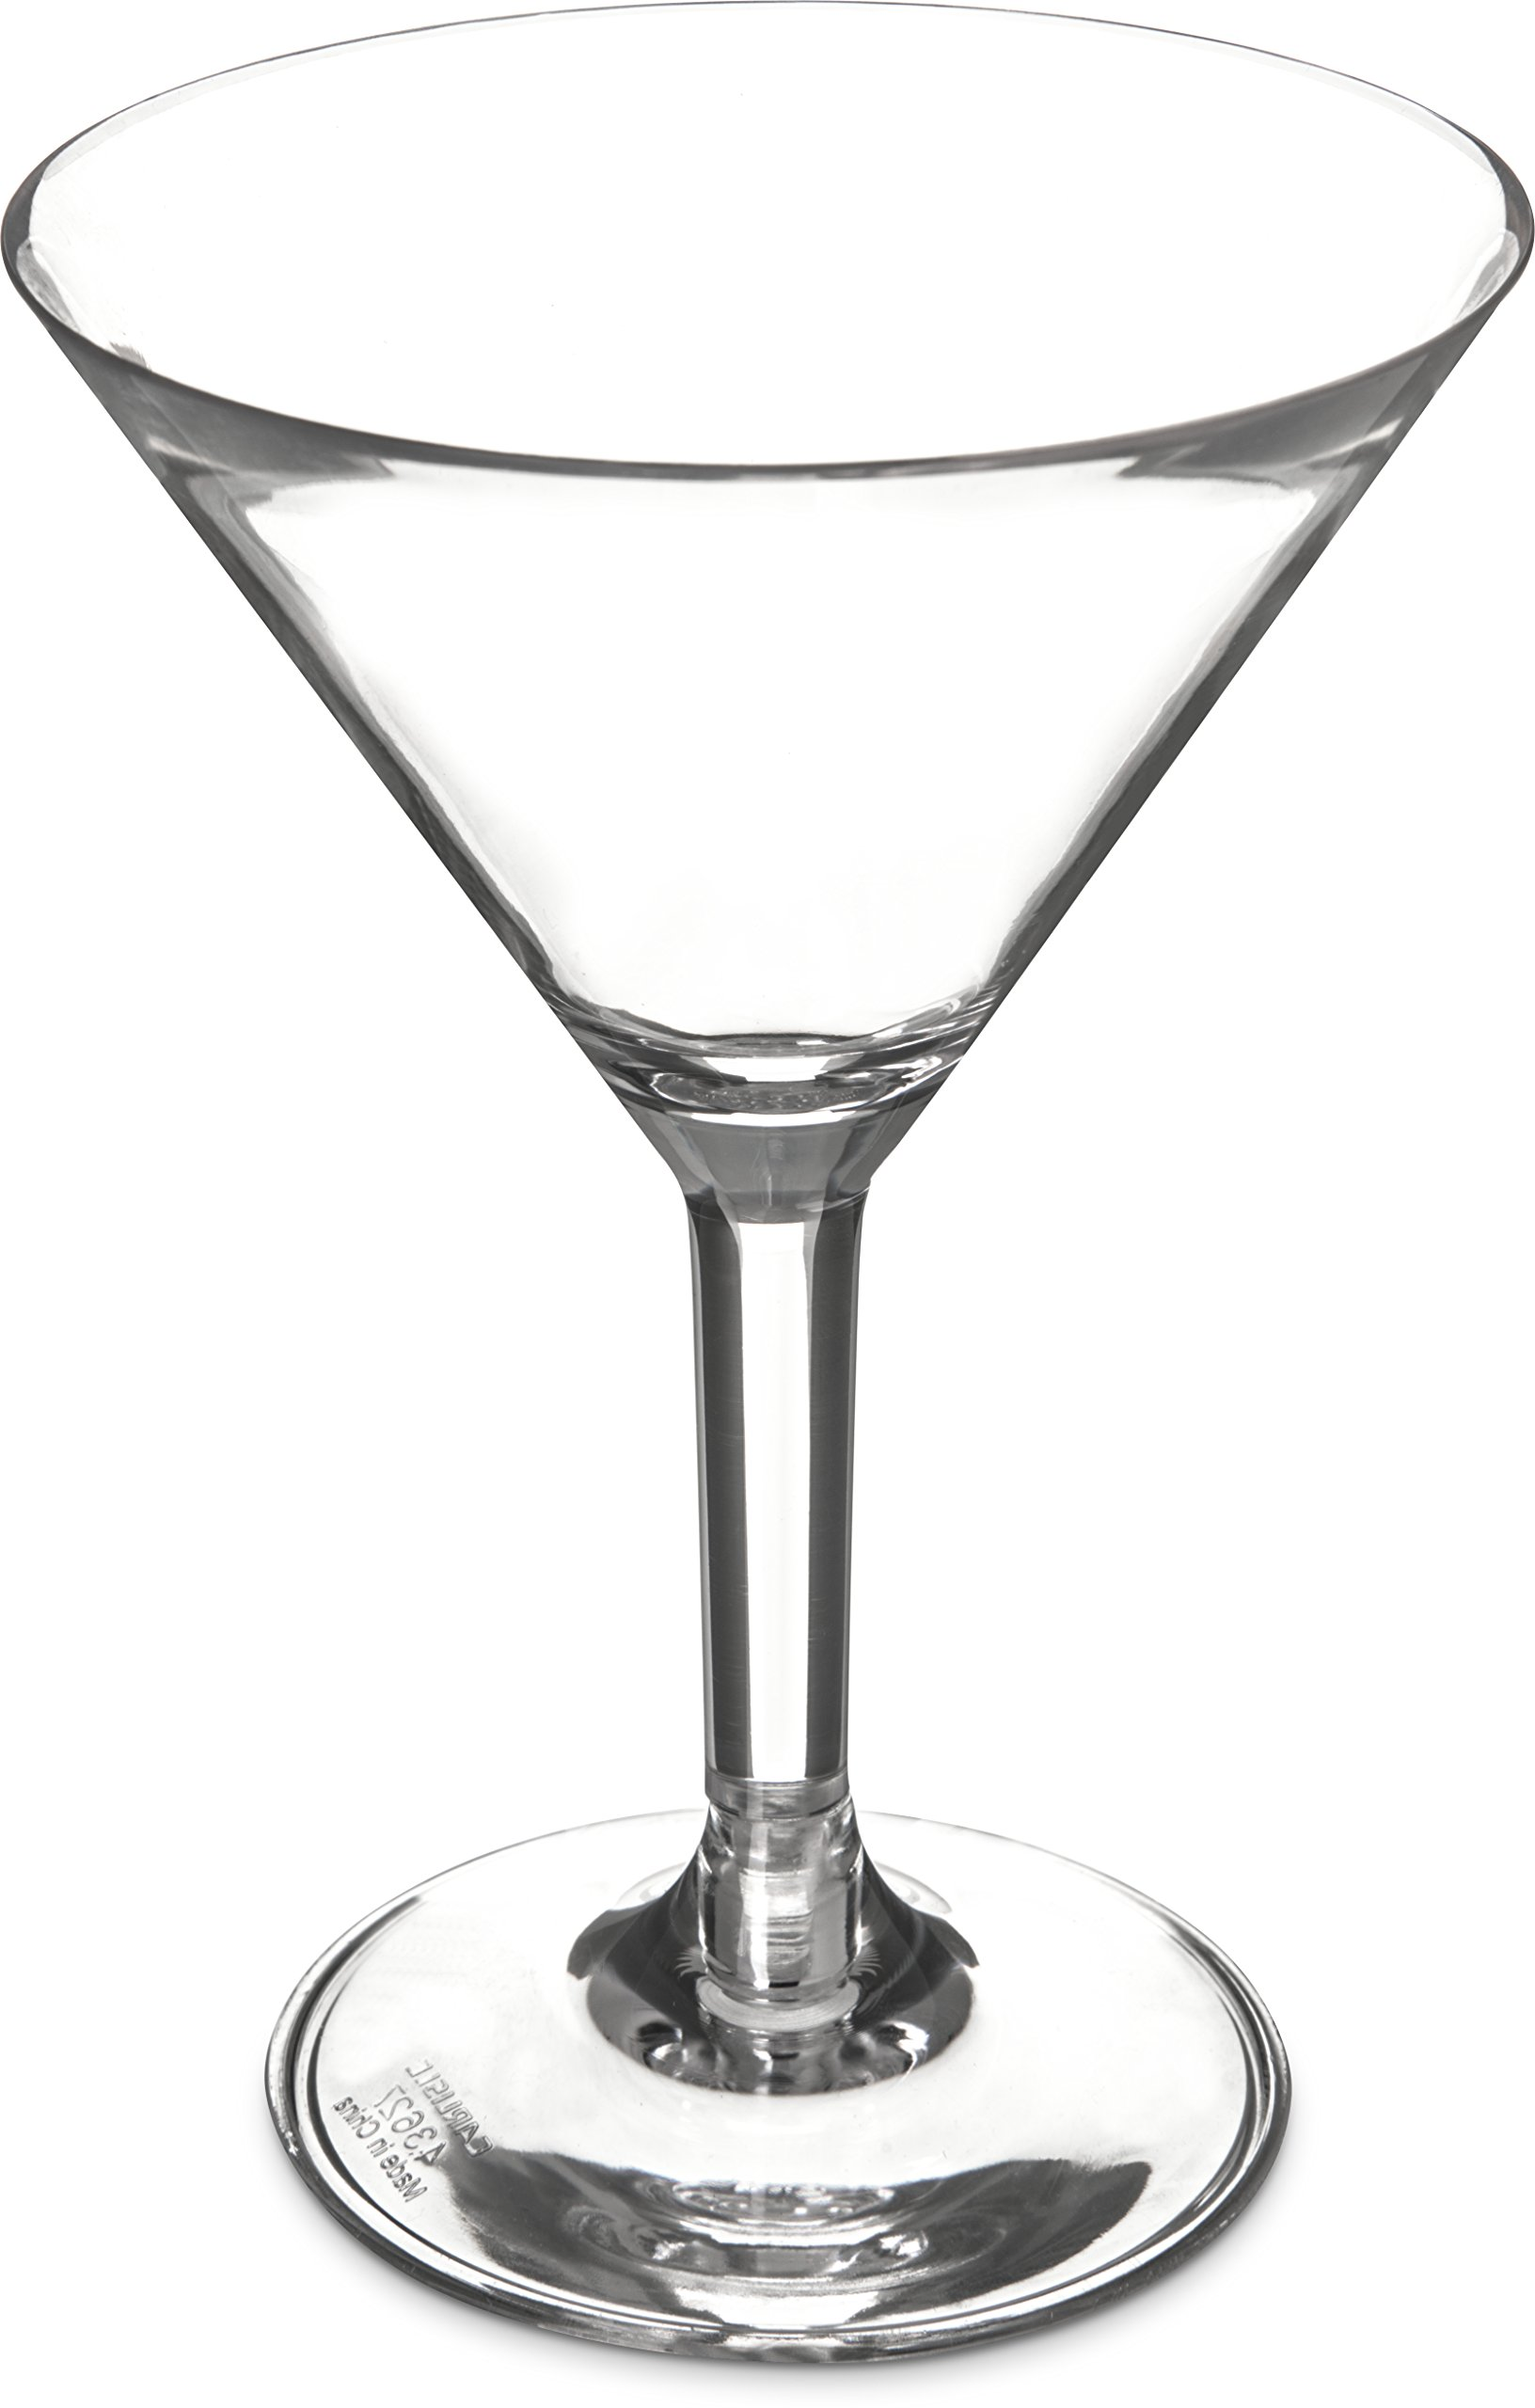 Carlisle 4362707 Liberty Polycarbonate Martini Glass, 8-oz. Capacity, Clear (Case of 24)